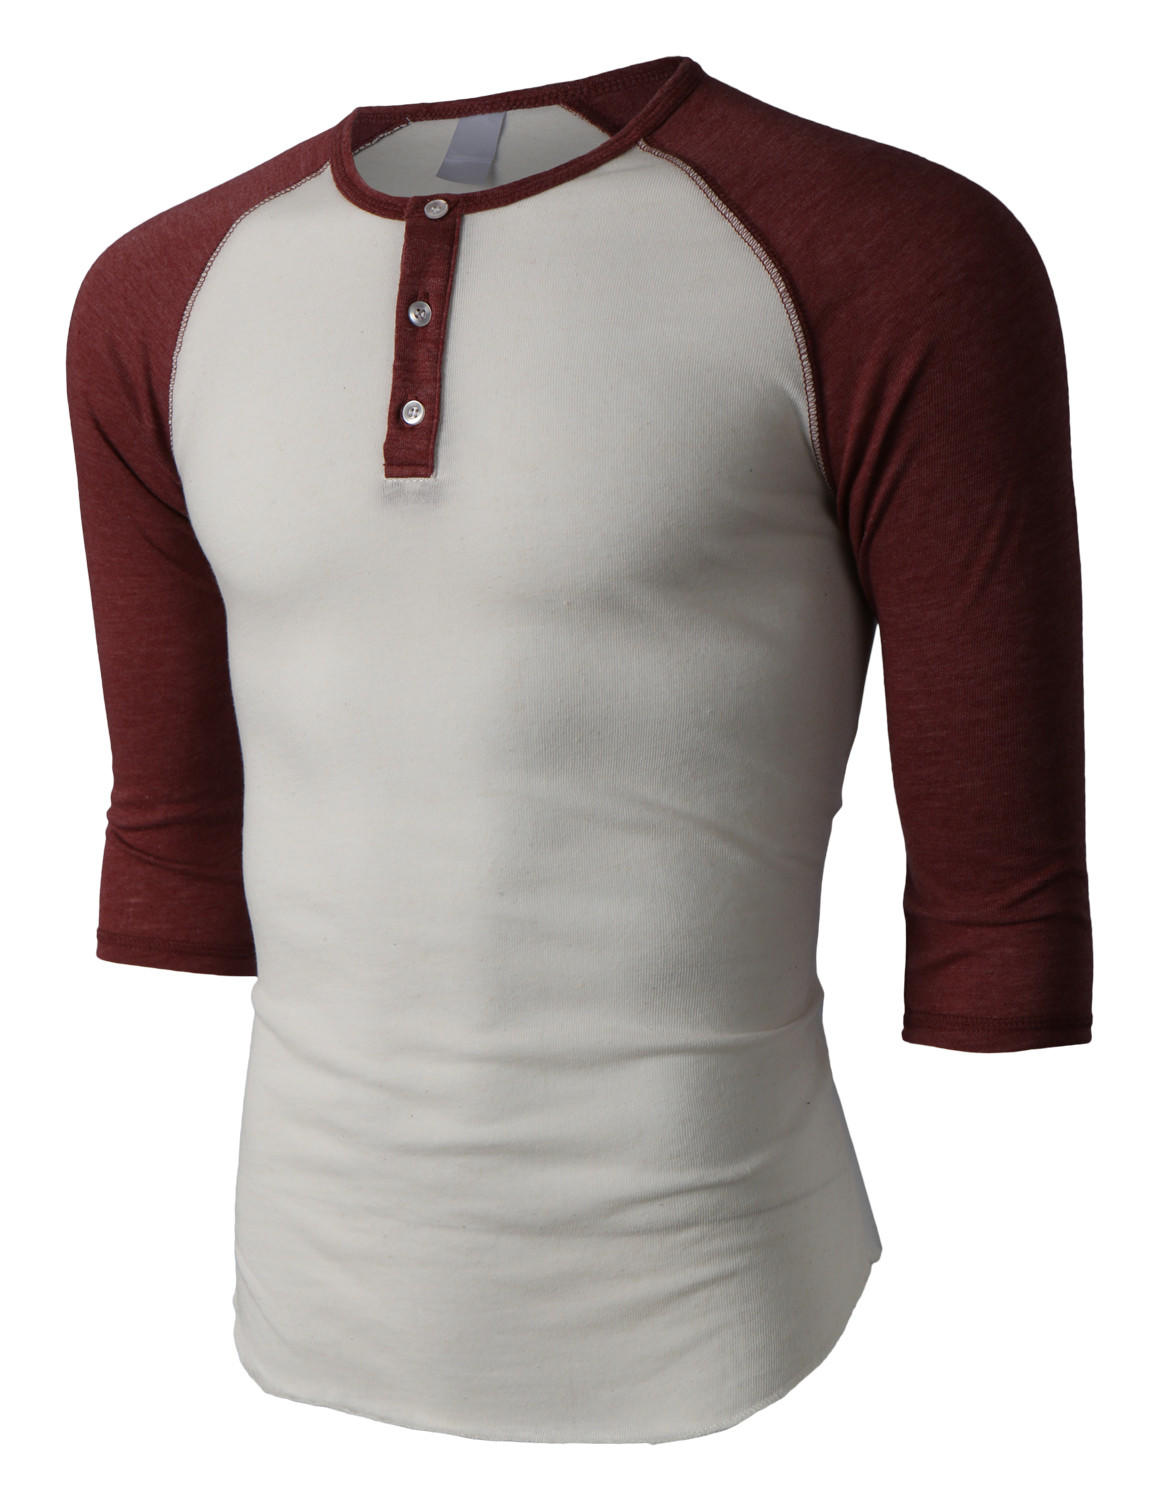 Find great deals on eBay for button down baseball shirts. Shop with confidence.